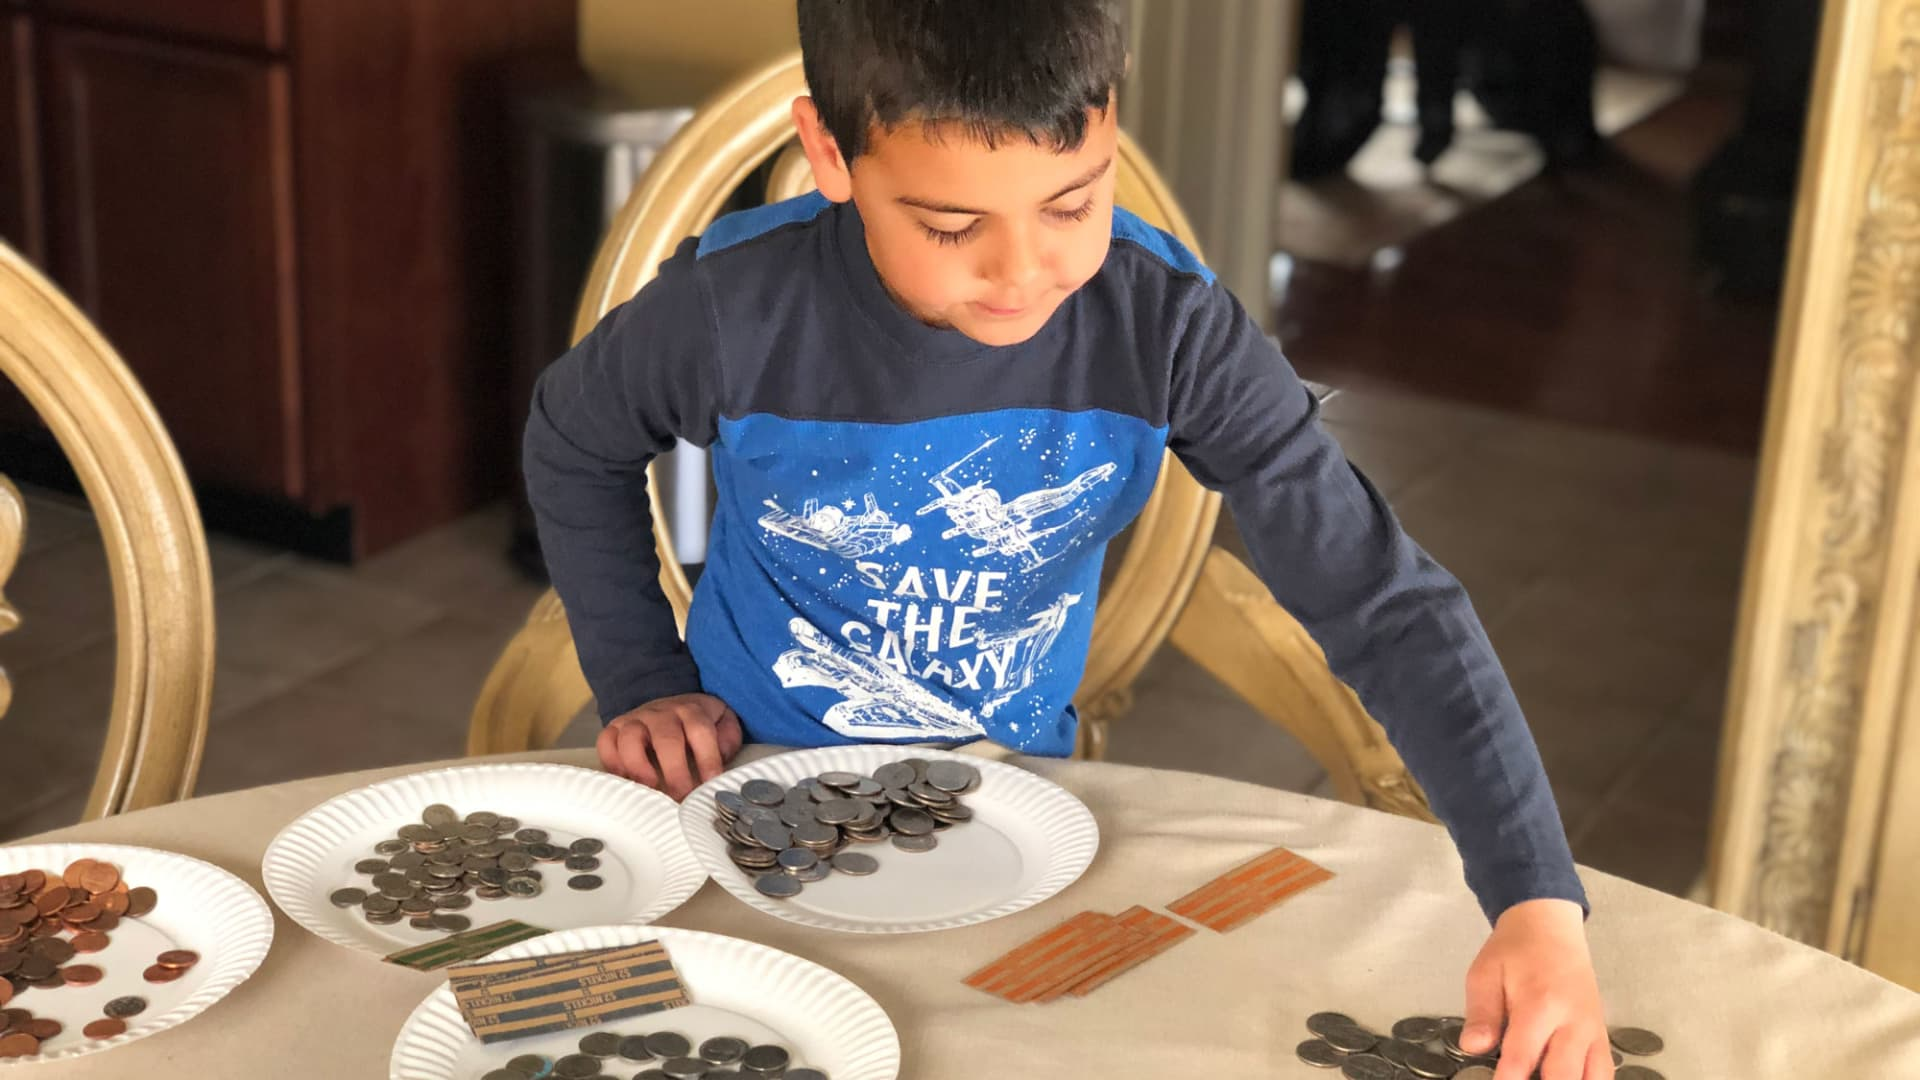 Sorting coins is one way of teaching kids about money.